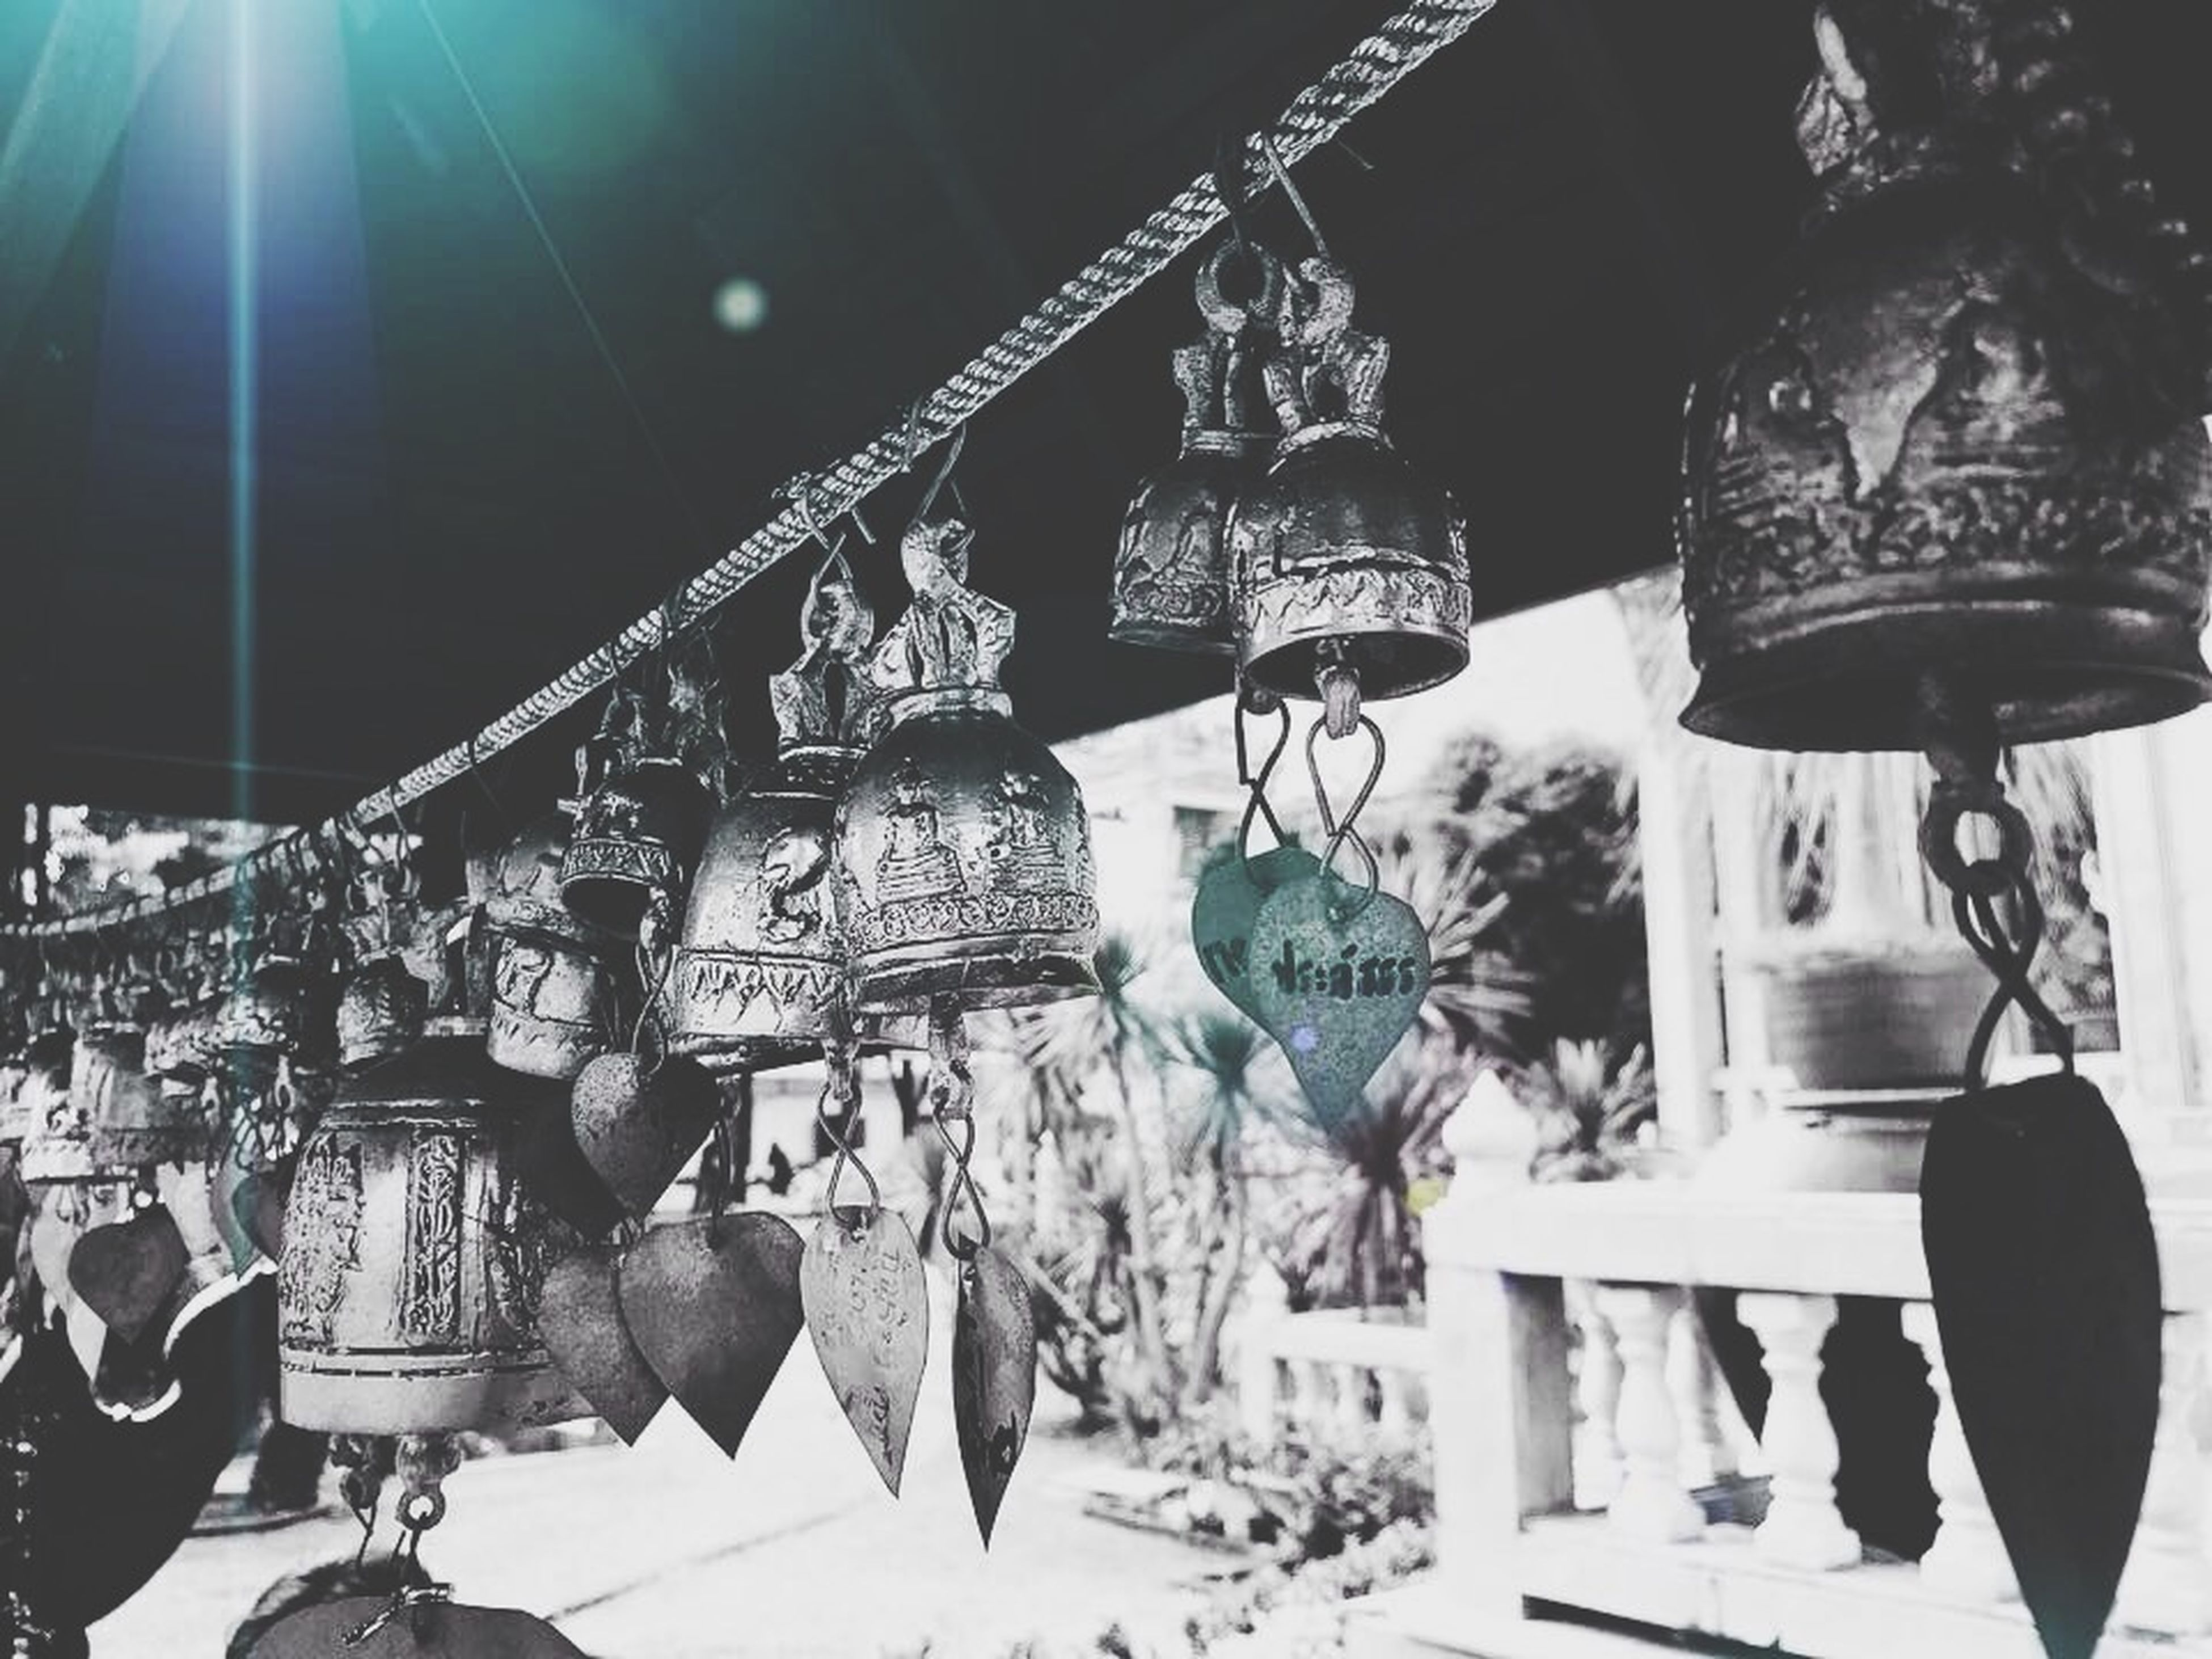 lighting equipment, hanging, architecture, built structure, lantern, illuminated, low angle view, decoration, ceiling, building exterior, electric lamp, indoors, lamp, street light, sunlight, electric light, electricity, potted plant, in a row, men